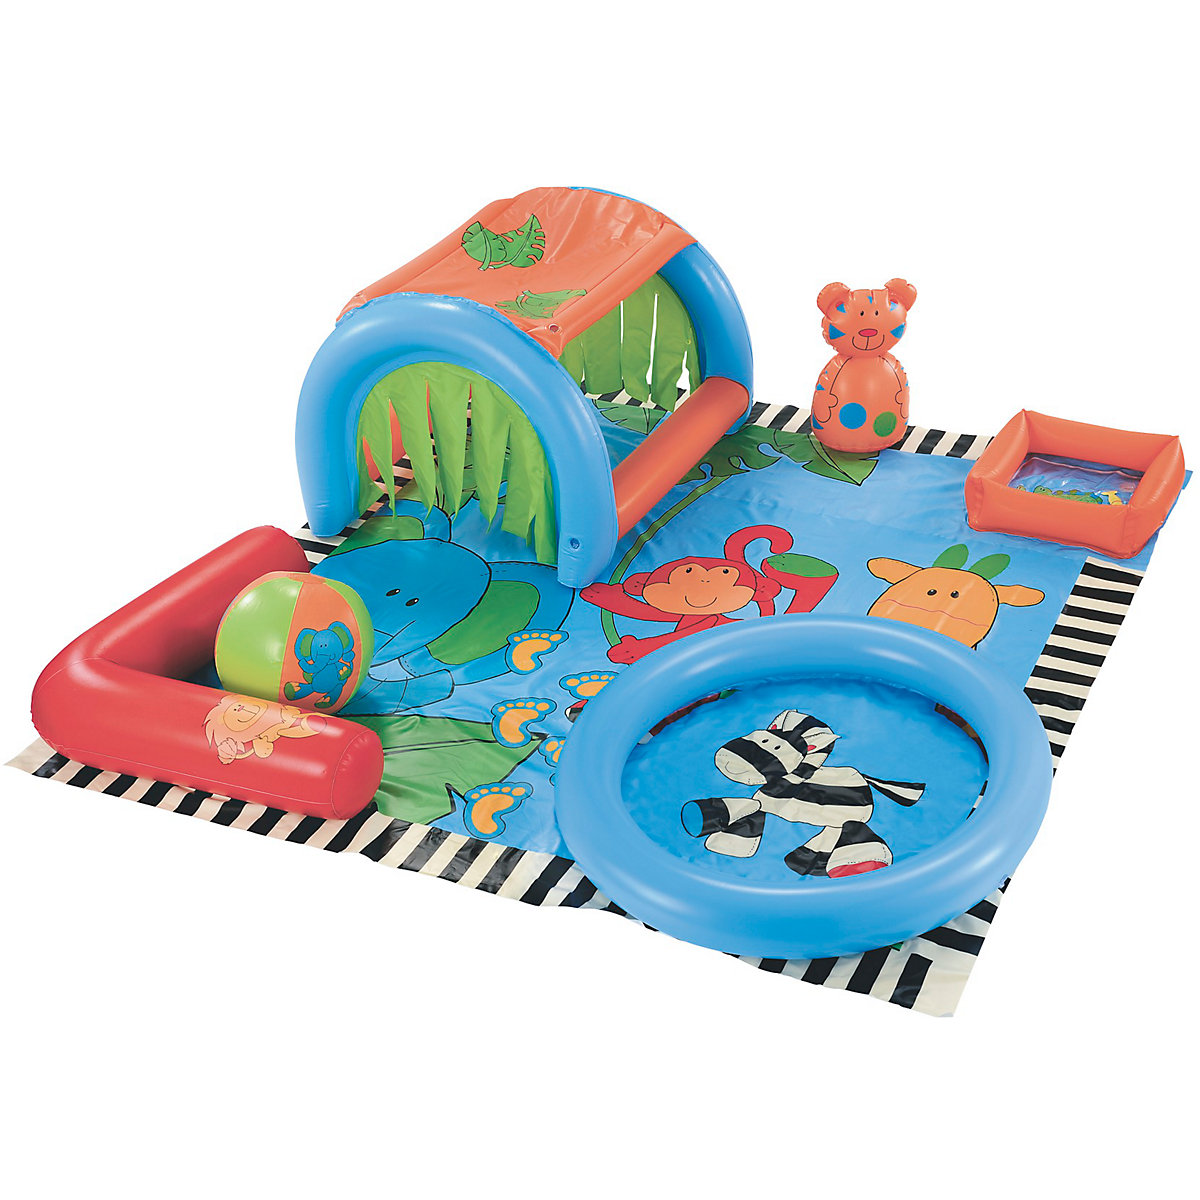 Toddler Activity Mat Toy From 1 Year